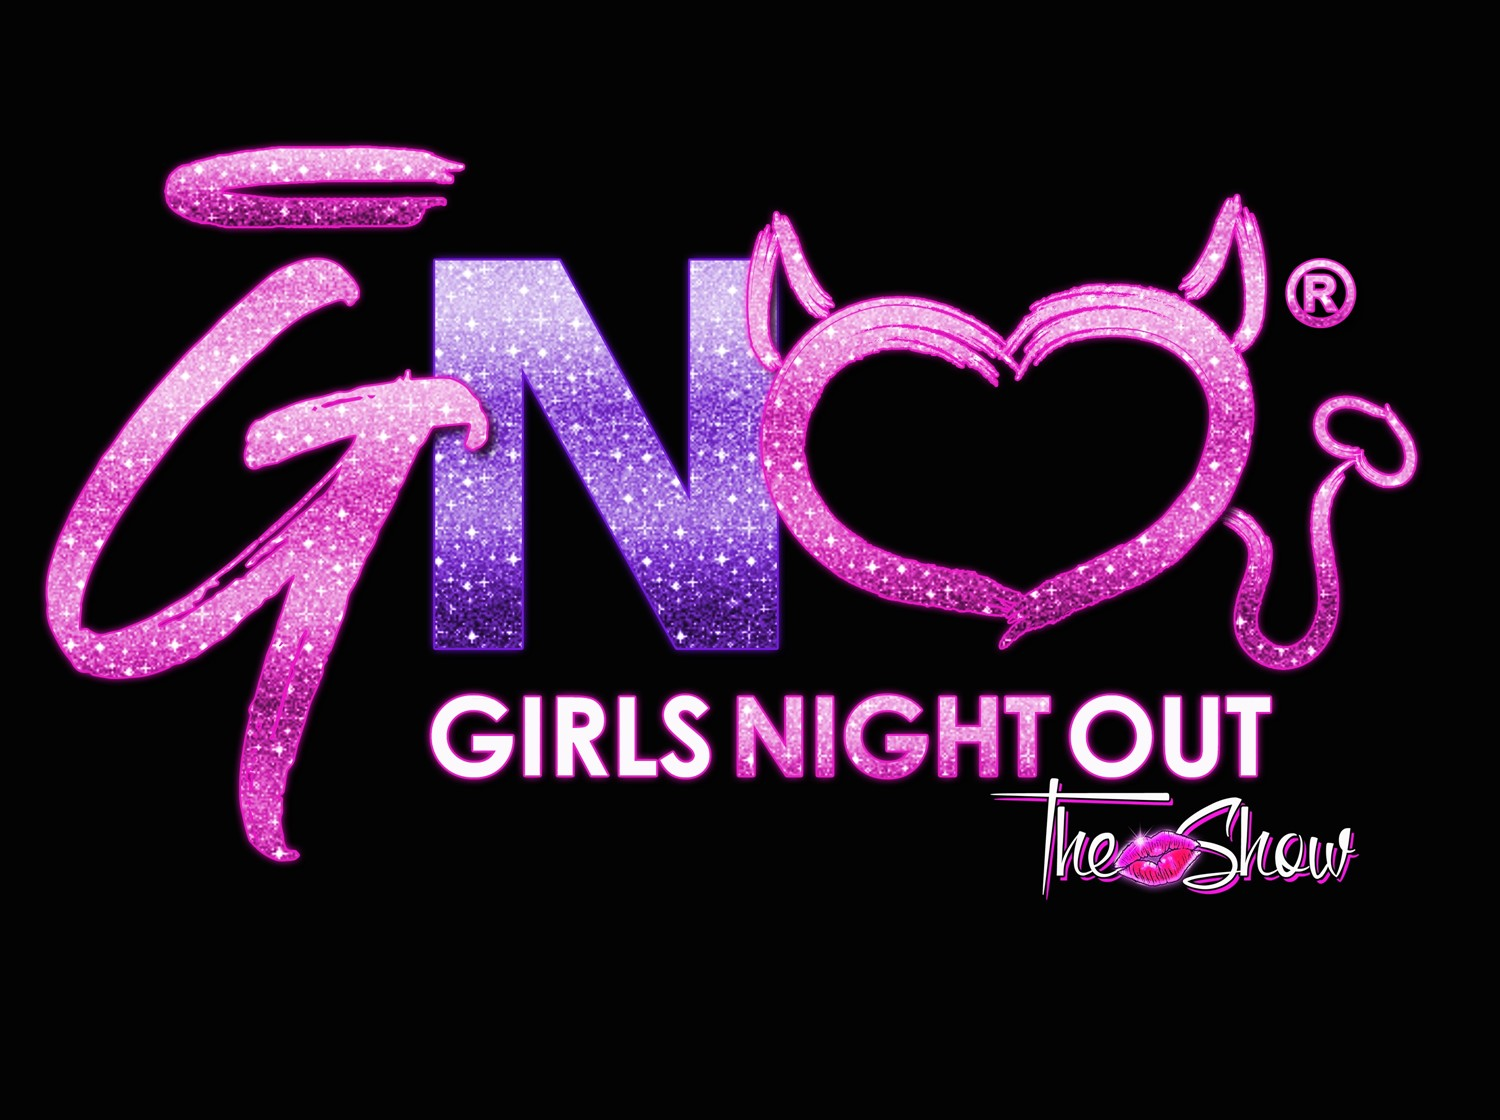 Hamburger Mary's Jax (18+) Jacksonville, FL on Jun 13, 20:00@Hamburger Mary's Jax - Buy tickets and Get information on Girls Night Out the Show tickets.girlsnightouttheshow.com